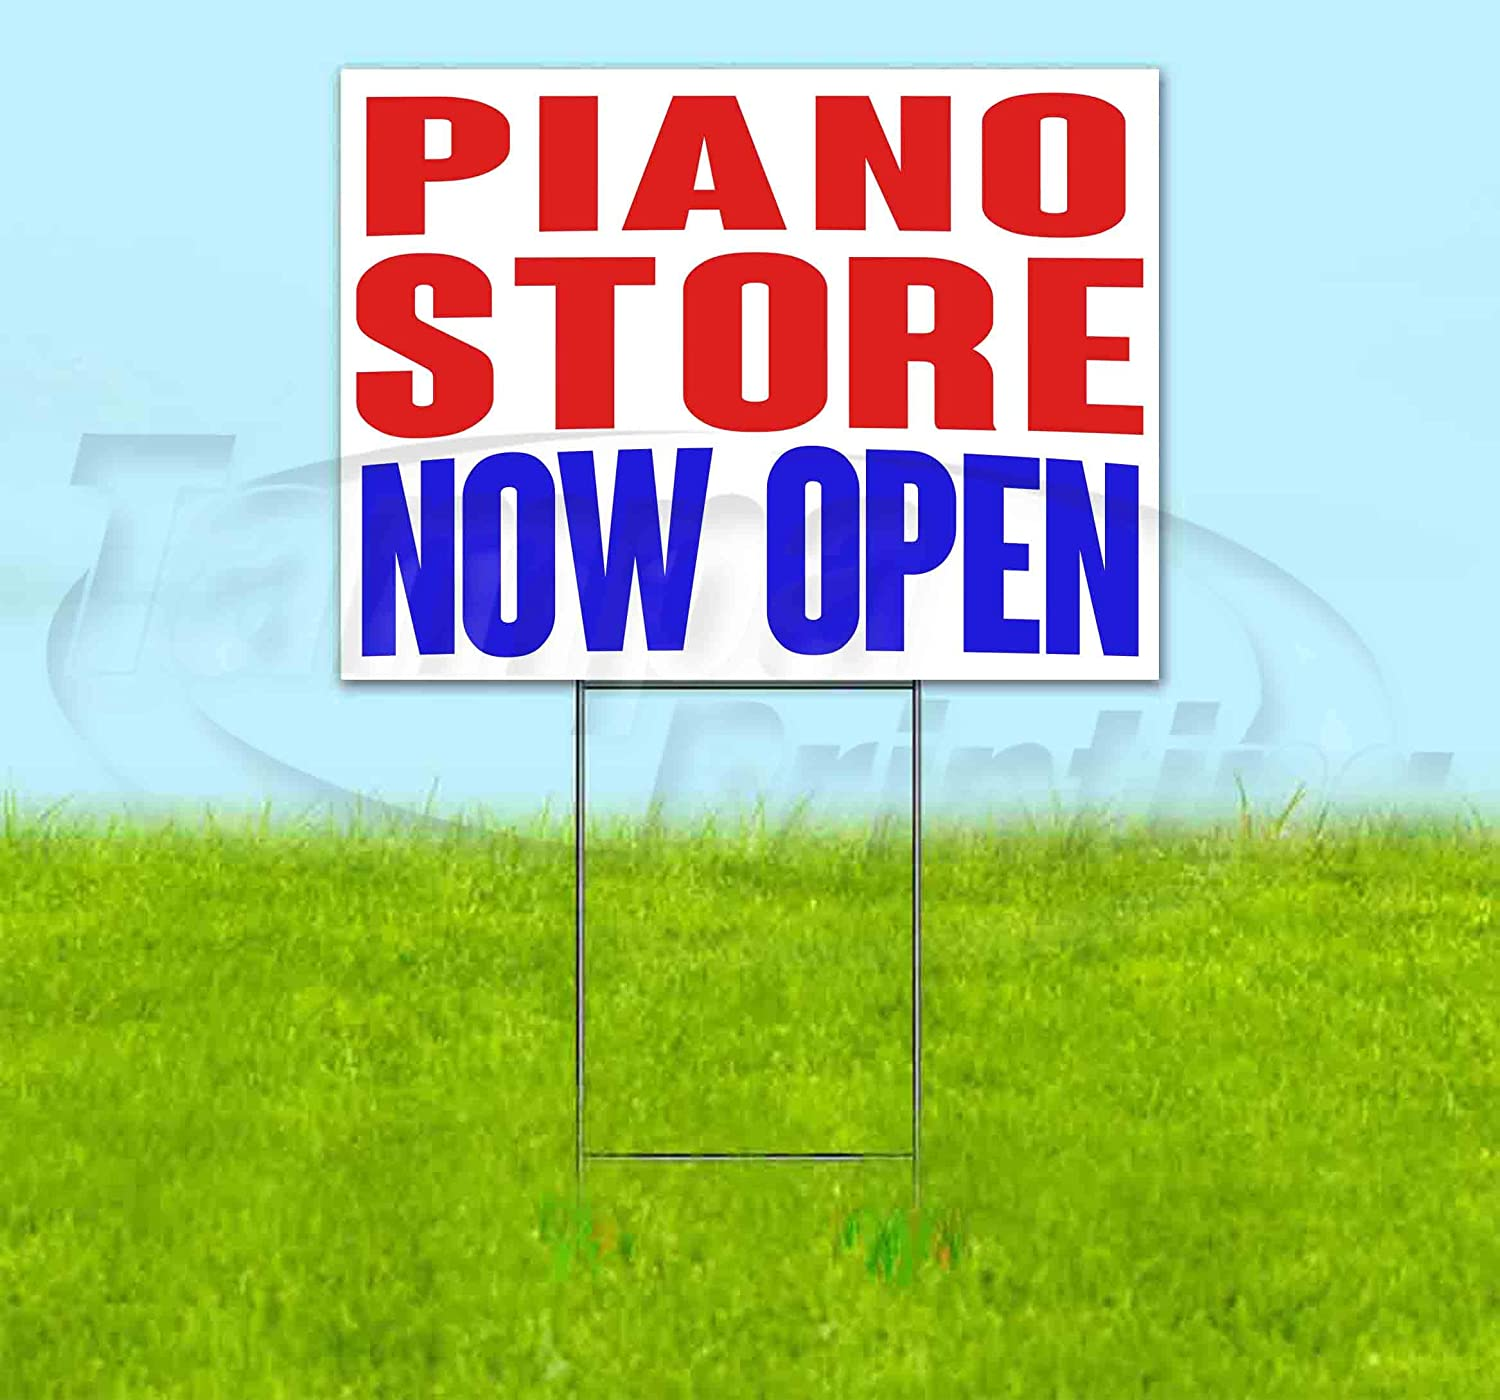 Piano Store Now Open 18